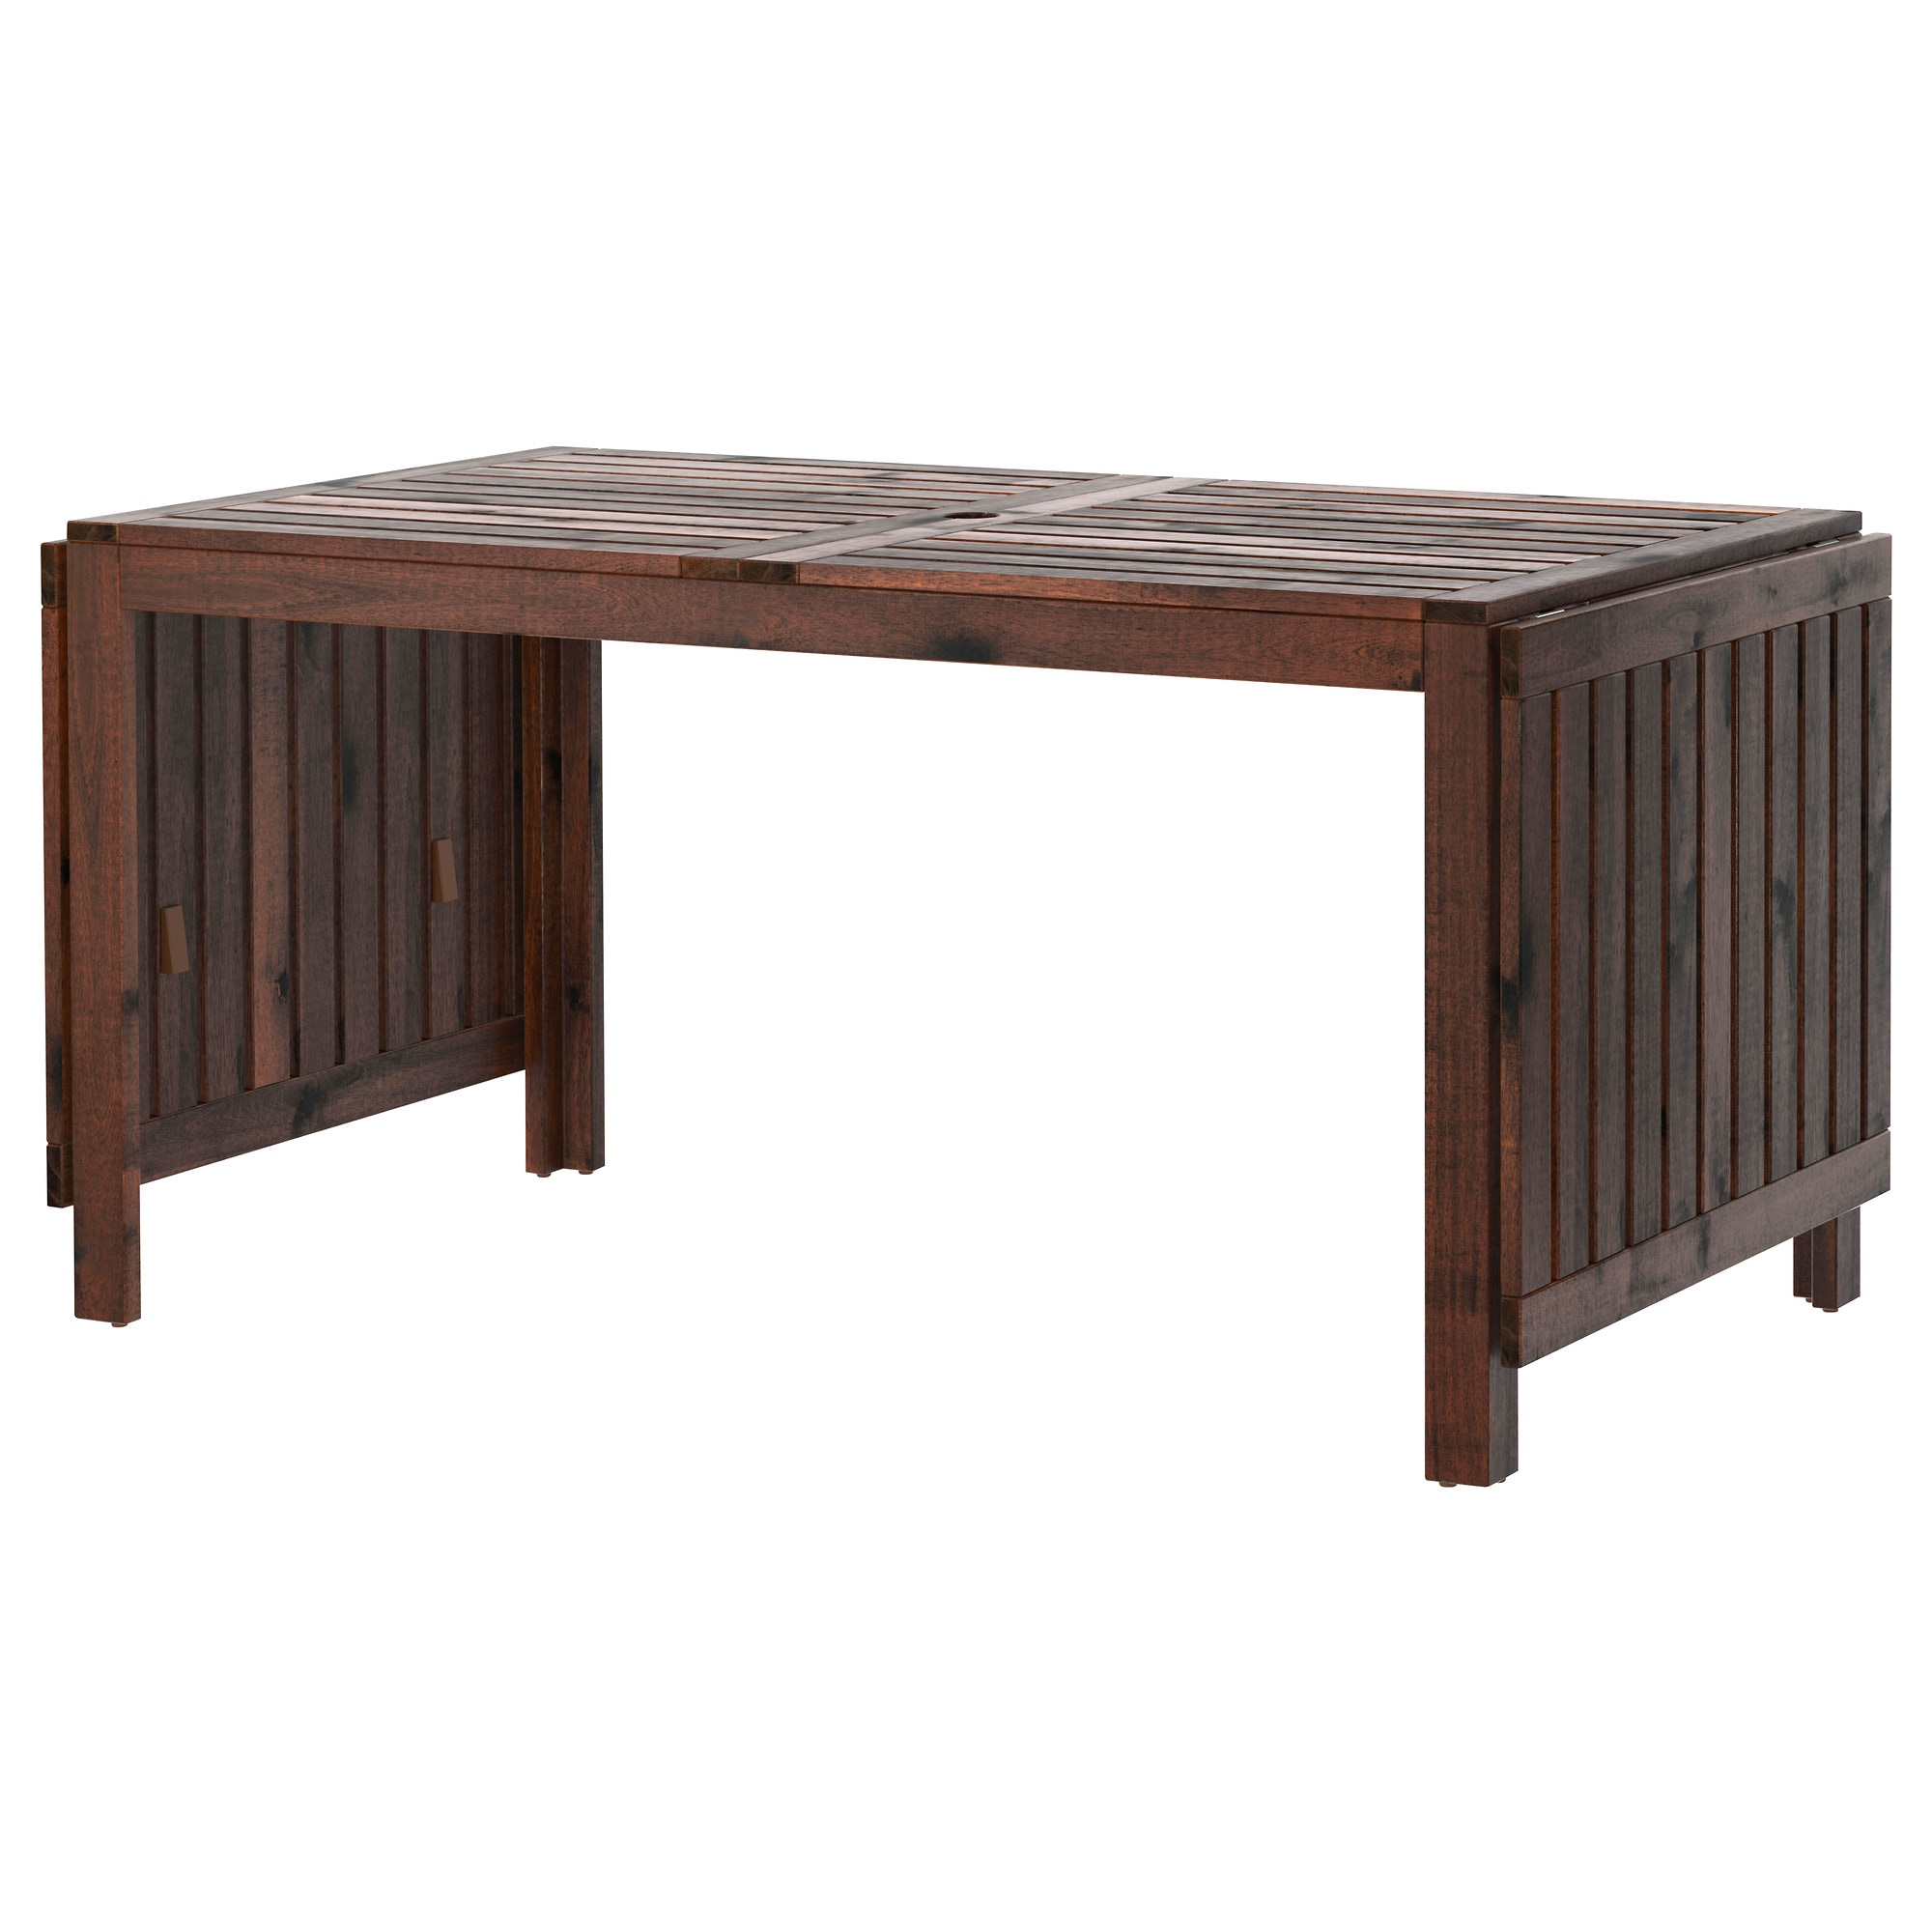 """PPLAR– Drop leaf table outdoor IKEA"